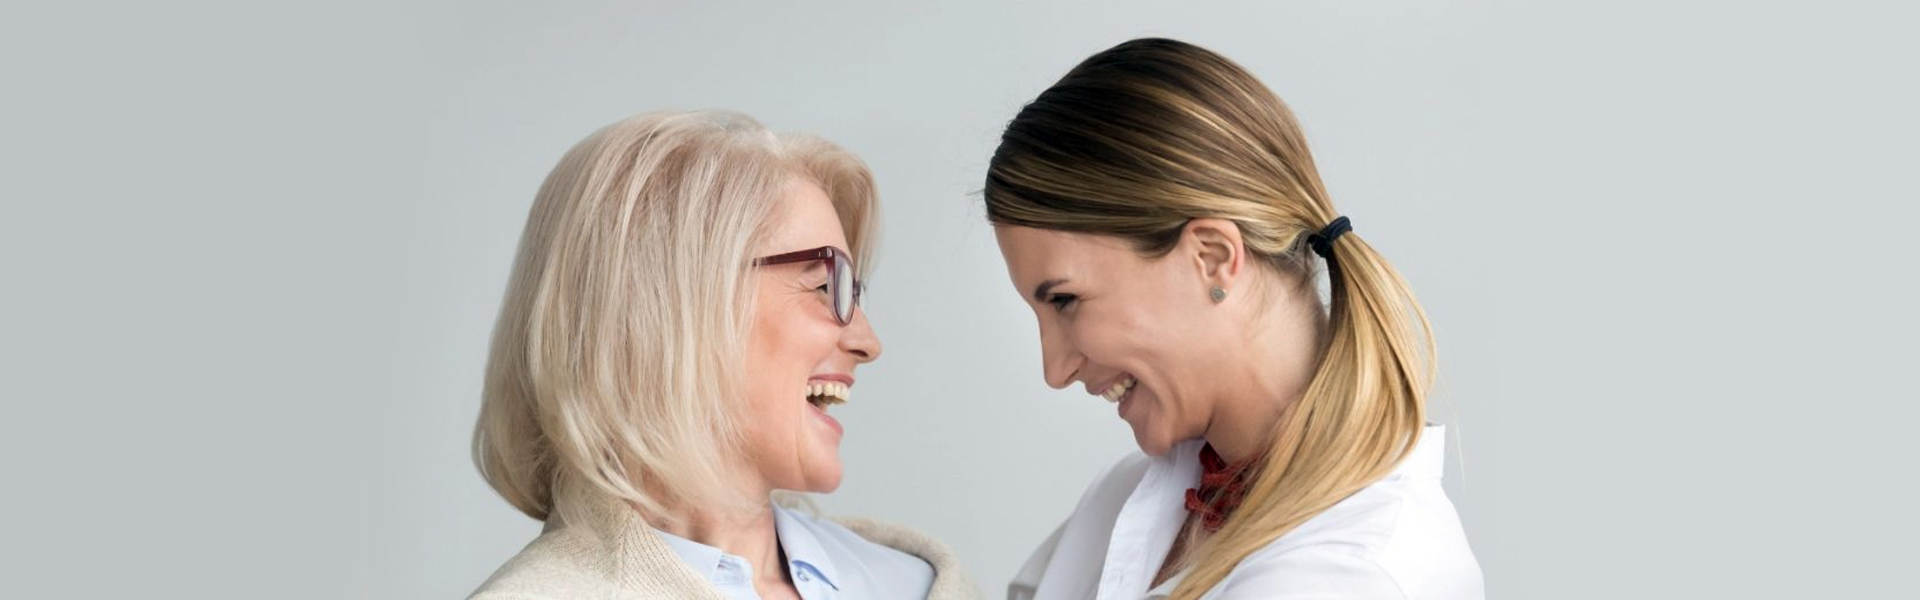 Dental Bonding: A Cost-Effective Way to Correct Minor Dental Flaws